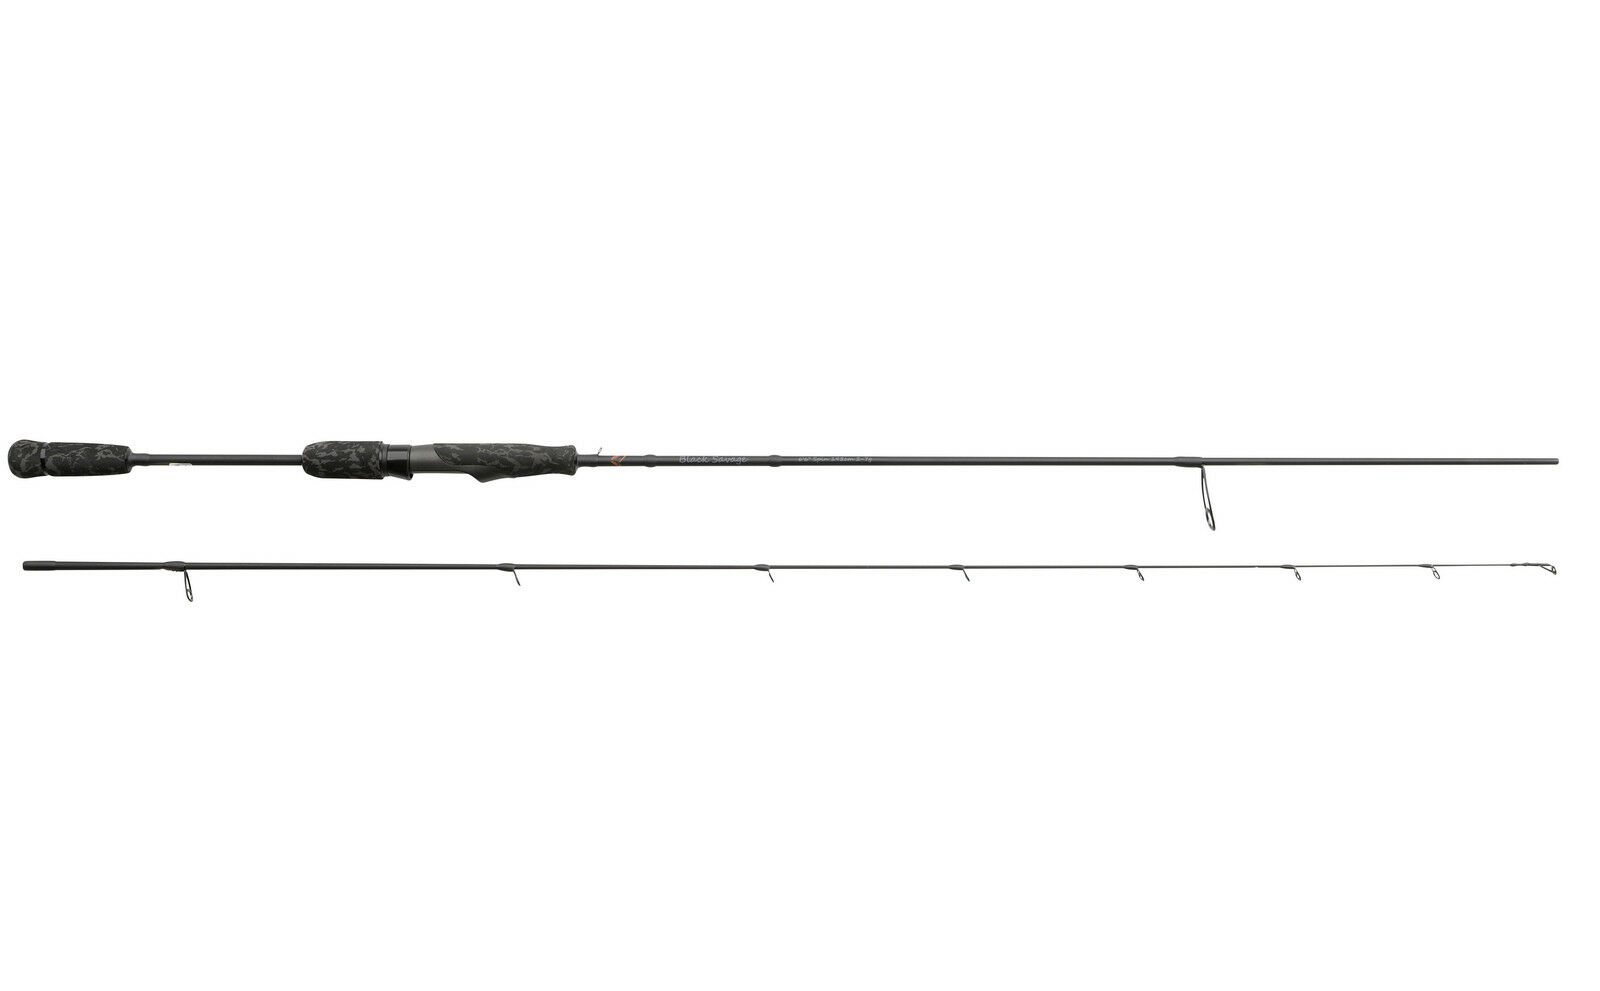 Savage Gear schwarz Savage Spin   1 98-2 51m 51m 51m   spinning rod   Spinrute   Angelrute fa6c2c